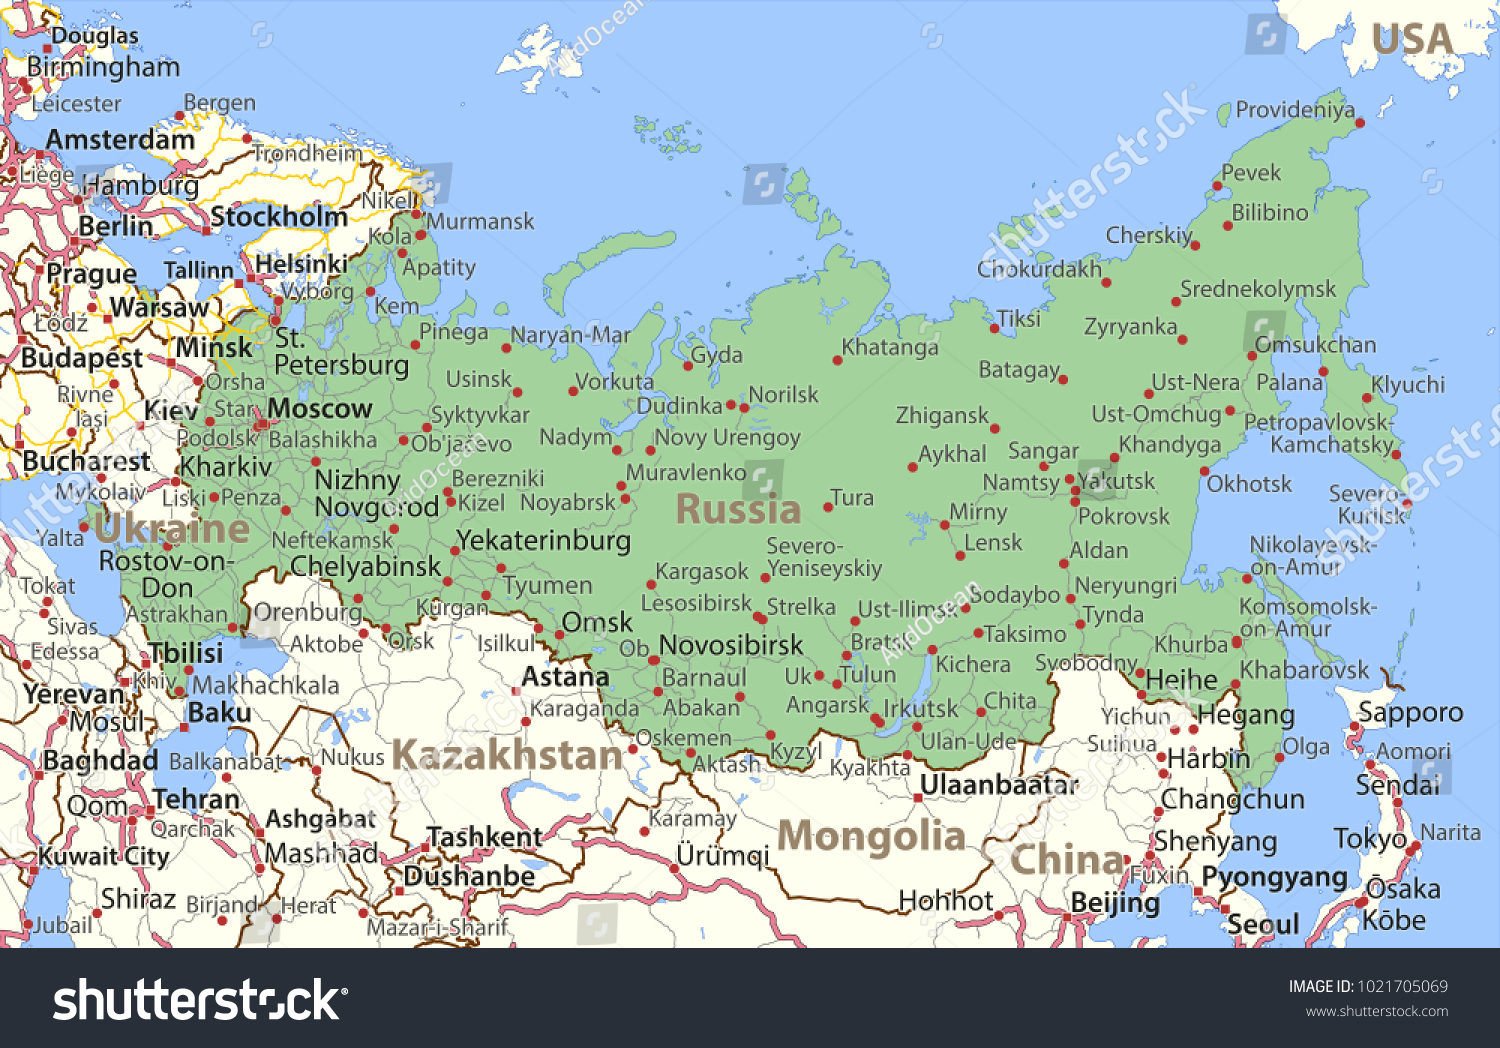 World map with country names in english picture ideas references world map with country names in english map of russia shows country borders place names and gumiabroncs Images